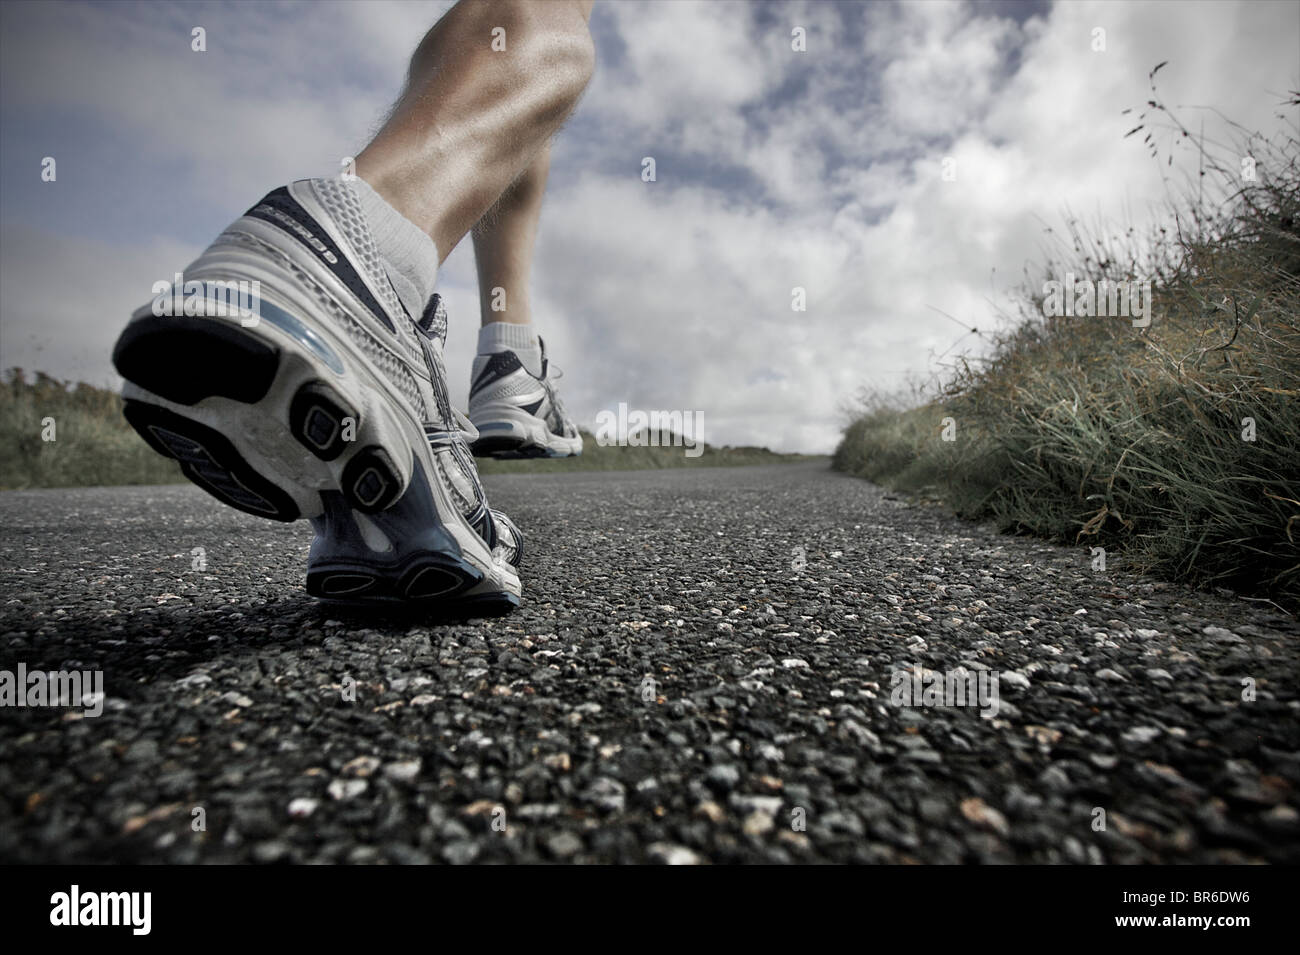 Un proche, low angle view of a male athlete running le long d'une route goudronnée avec ses grandes jambes Photo Stock